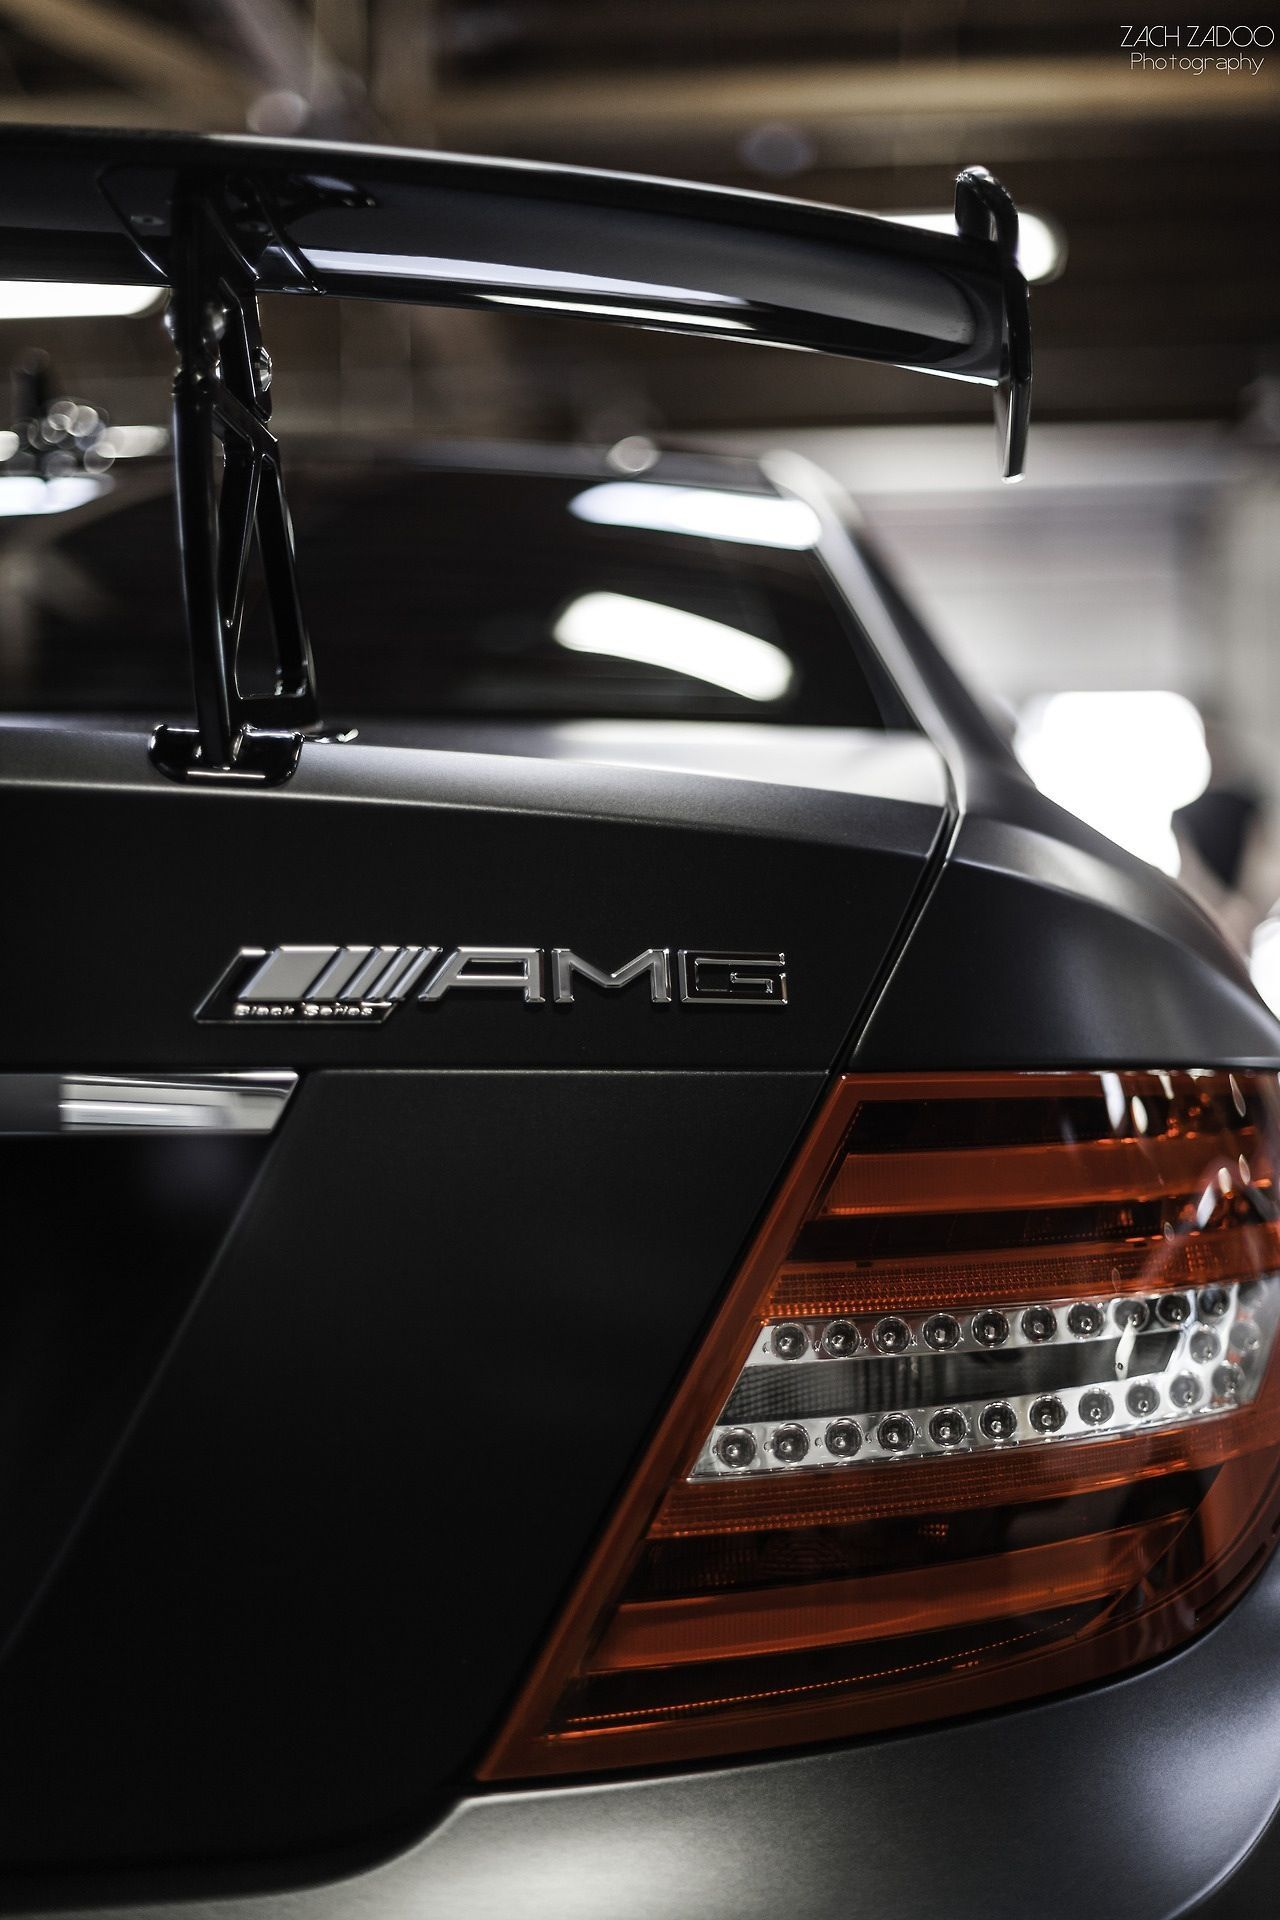 Best Car No Listing Of Finest Luxury Cars Is Complete Without The Mercedes Benz S Class The German Car Ma C63 Amg Black Series Mercedes Amg Mercedes Benz Amg